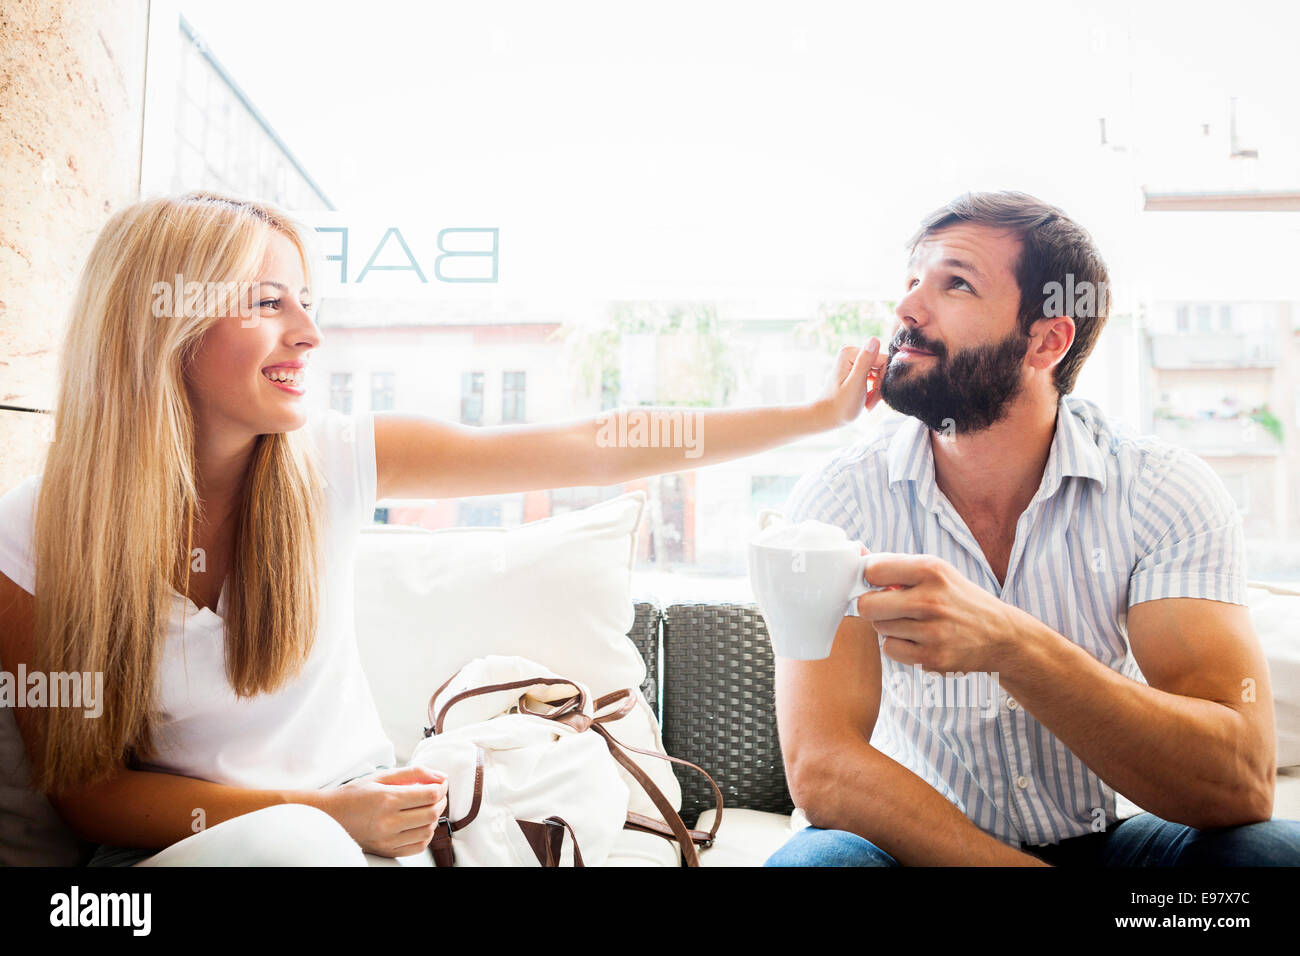 Young couple in cafe fooling around - Stock Image